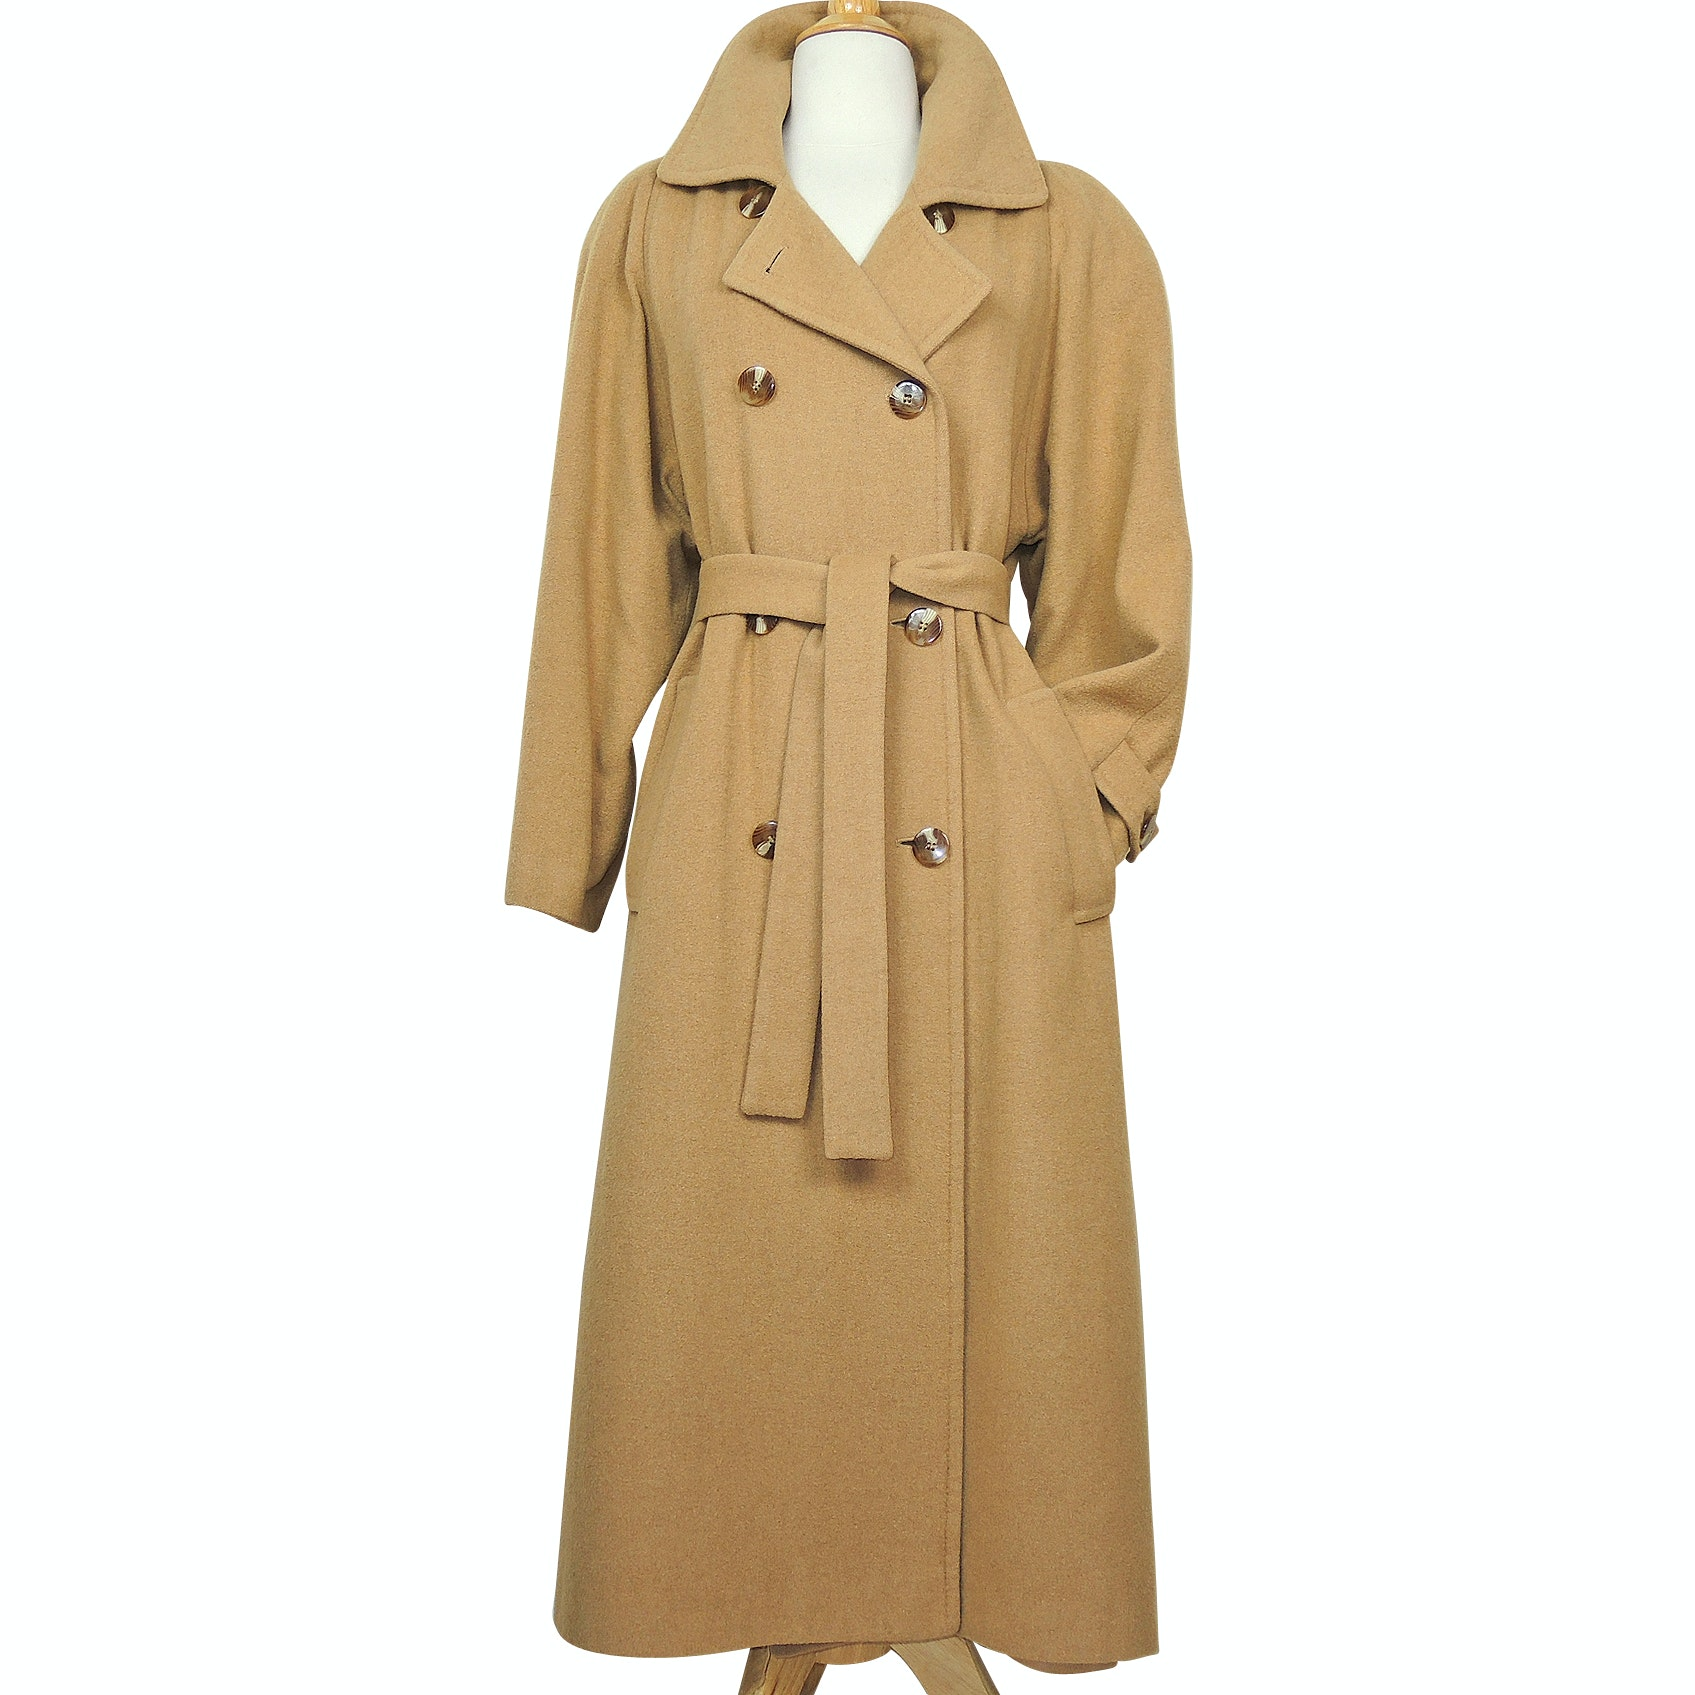 Womens Vintage Fleurette of California Camel Hair Double-Breasted Coat from Saks